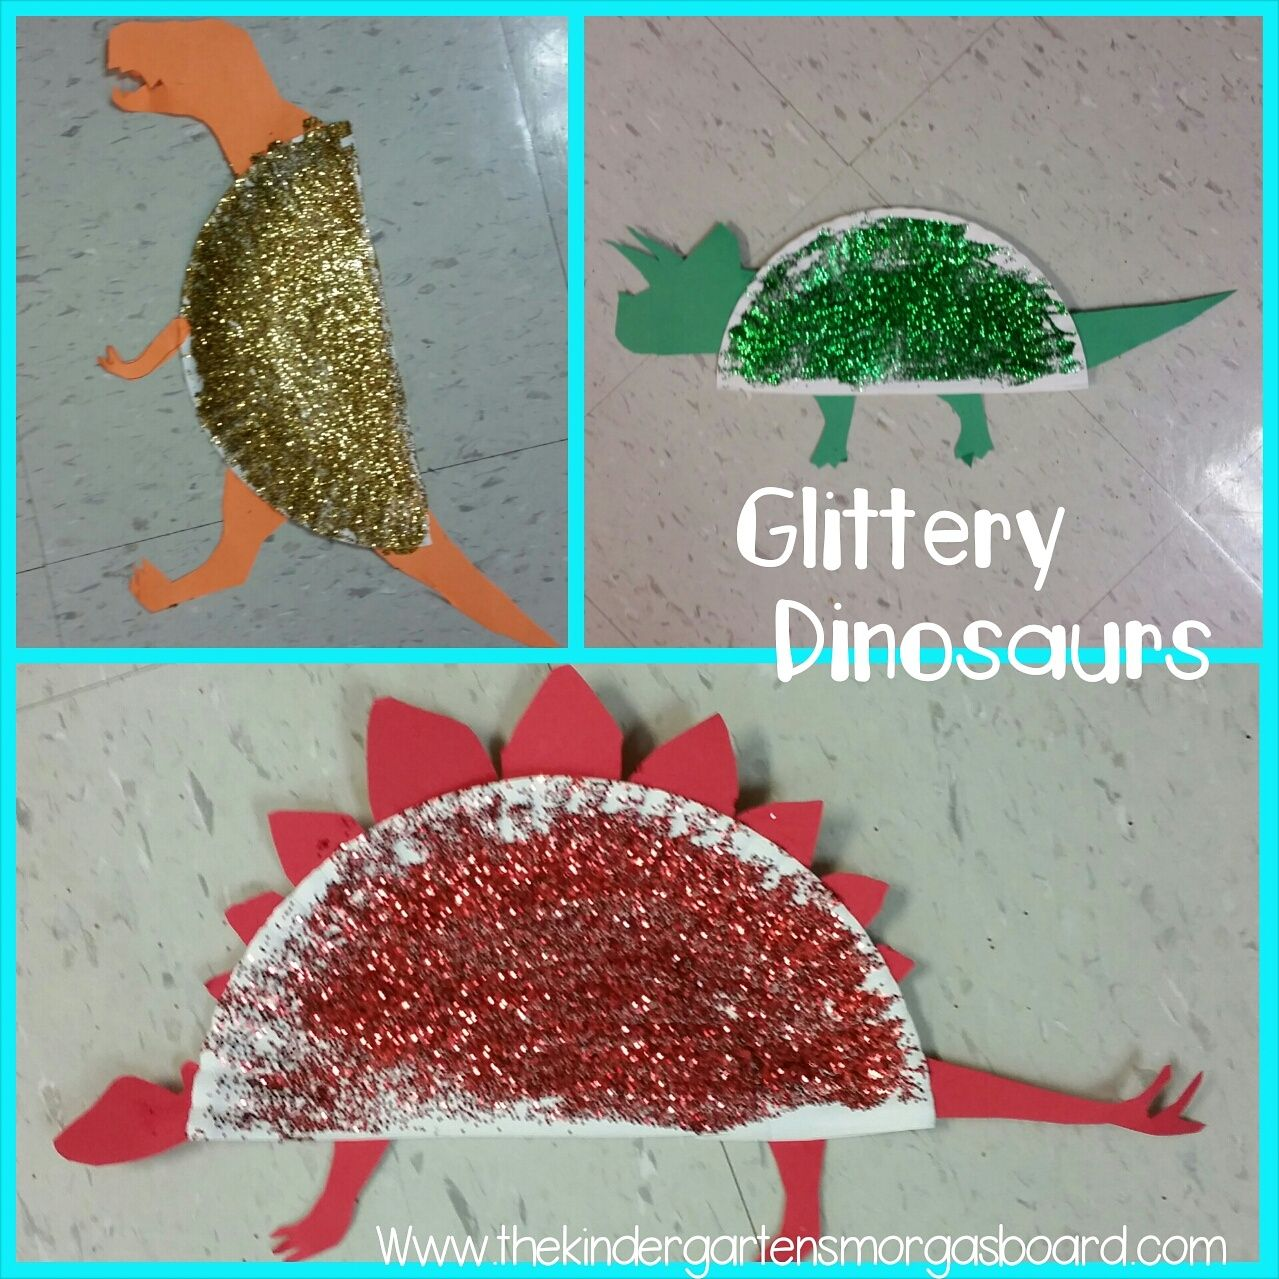 Glittery Dinosaurs A Fun Dinosaur Craft Or Art Project And Glitter